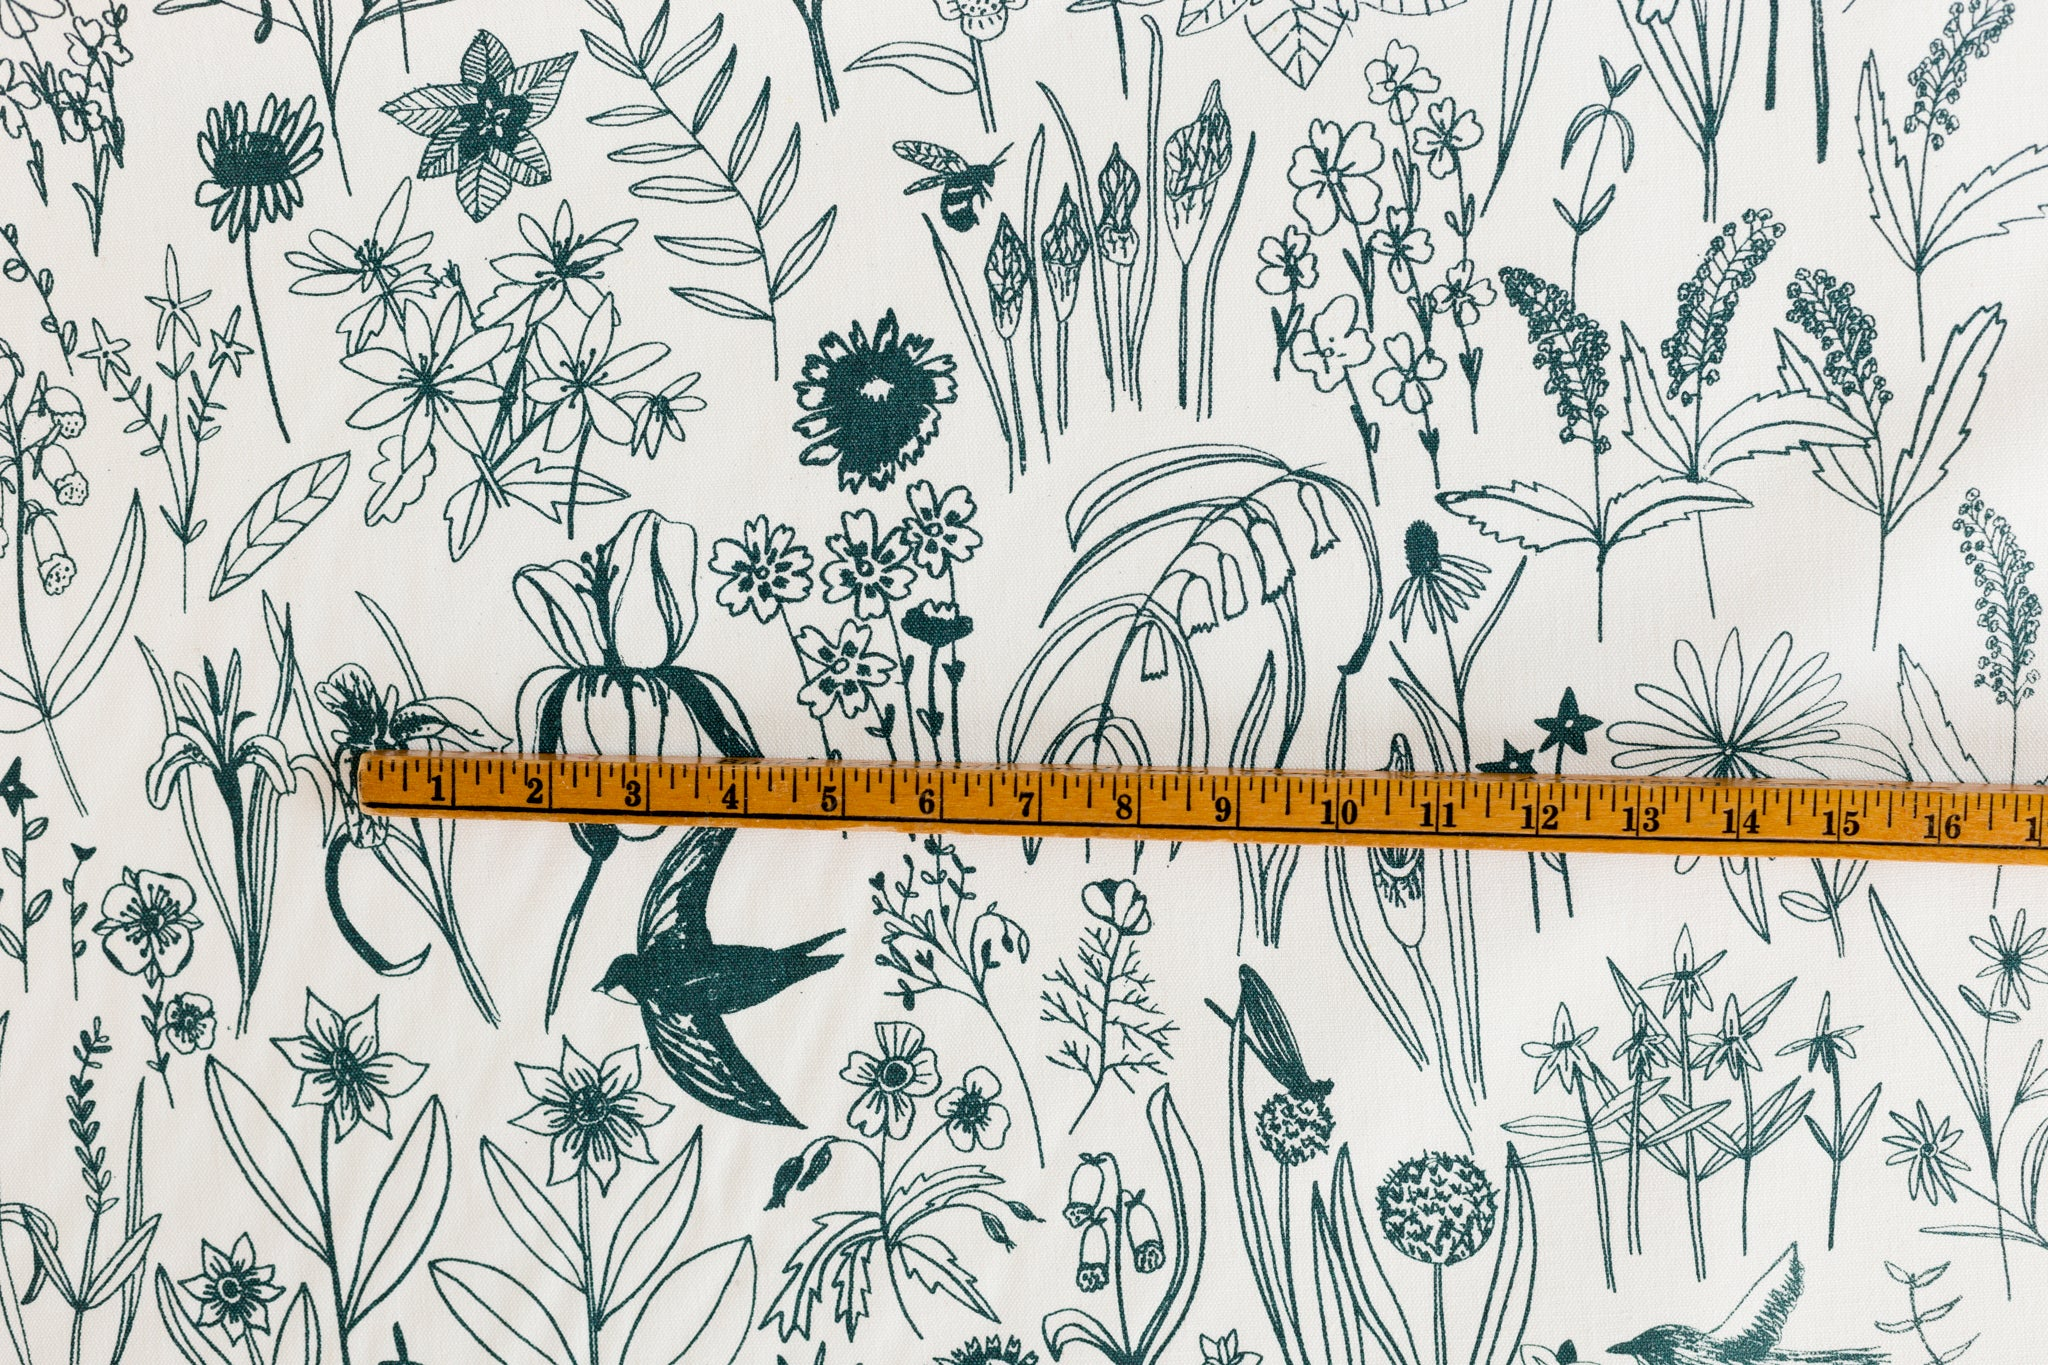 Fabric yardage screen printed with bird and botanical illustrations with yardstick for scale